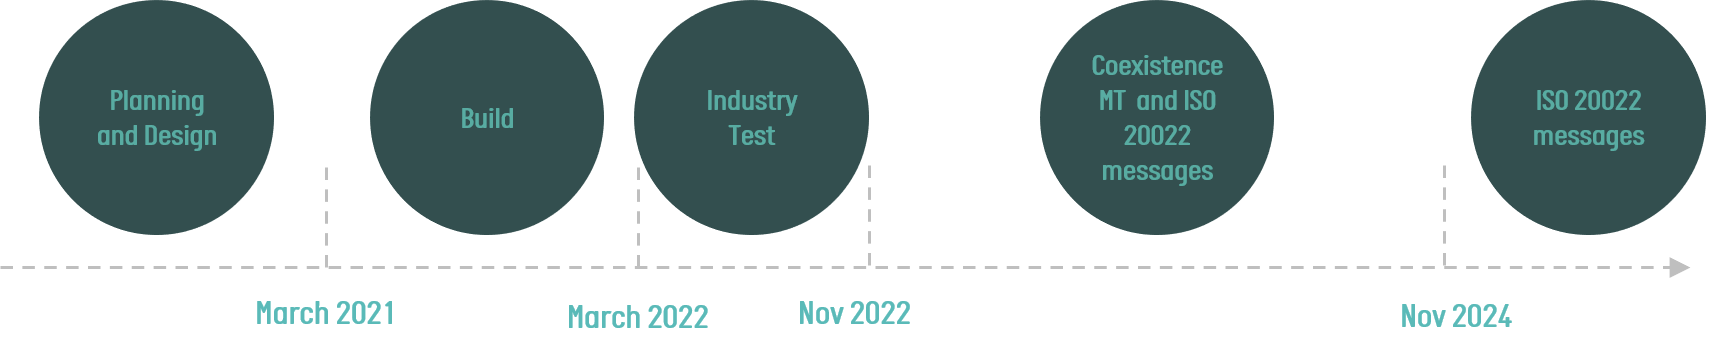 Phases of ISO20022